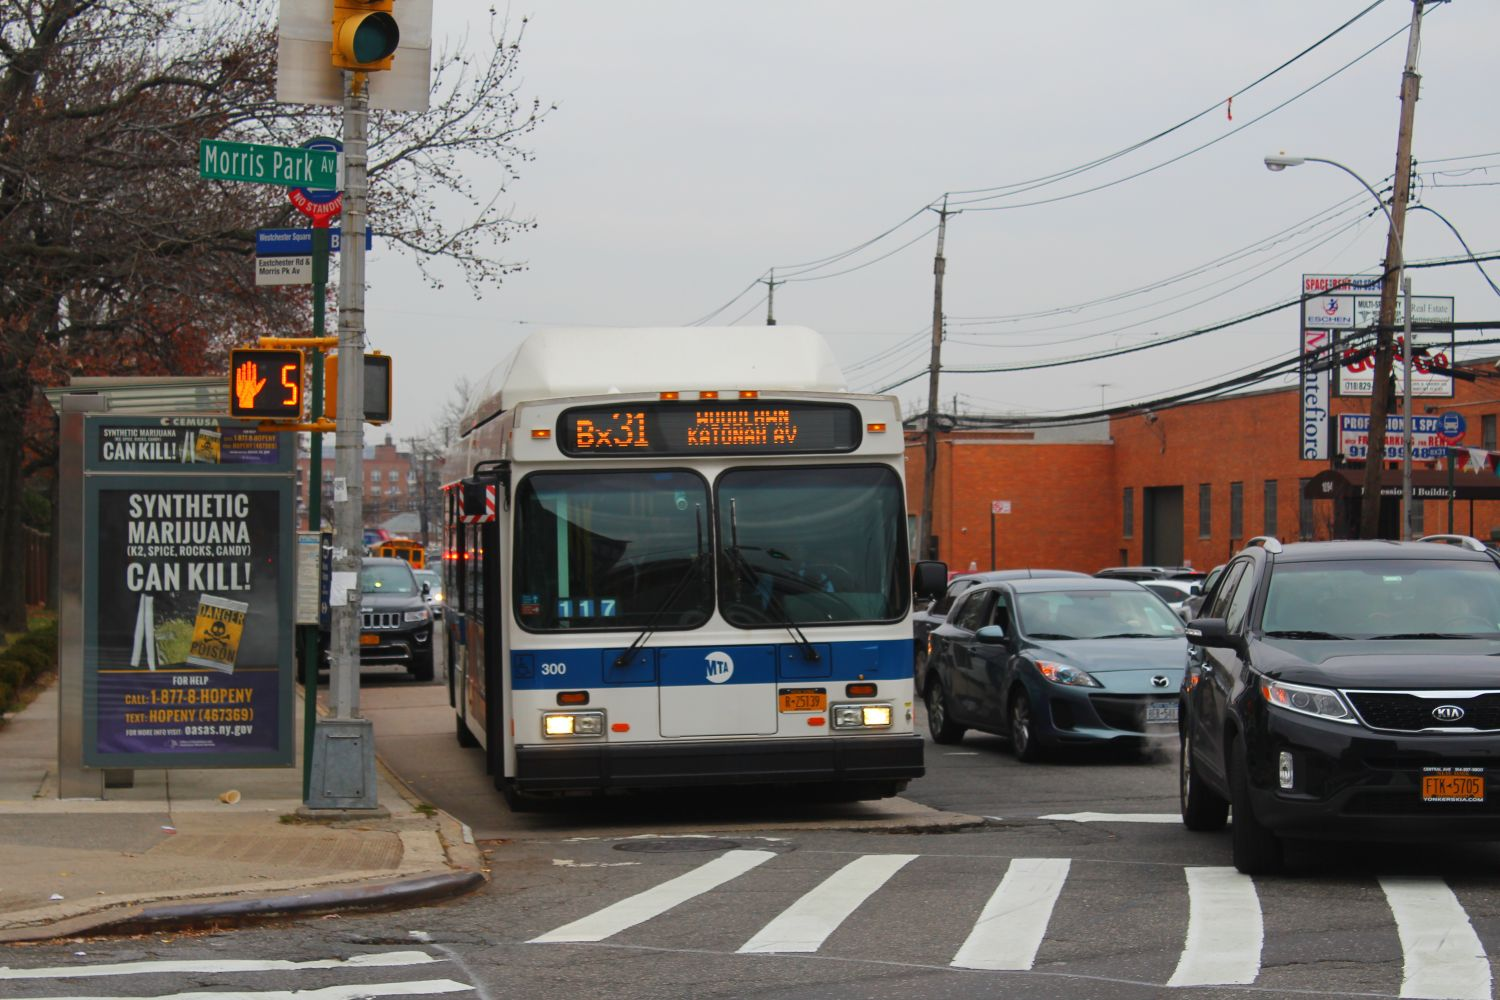 MTA NYC Bus New Flyer C40LF CNG 300 with Luminator Spectrums